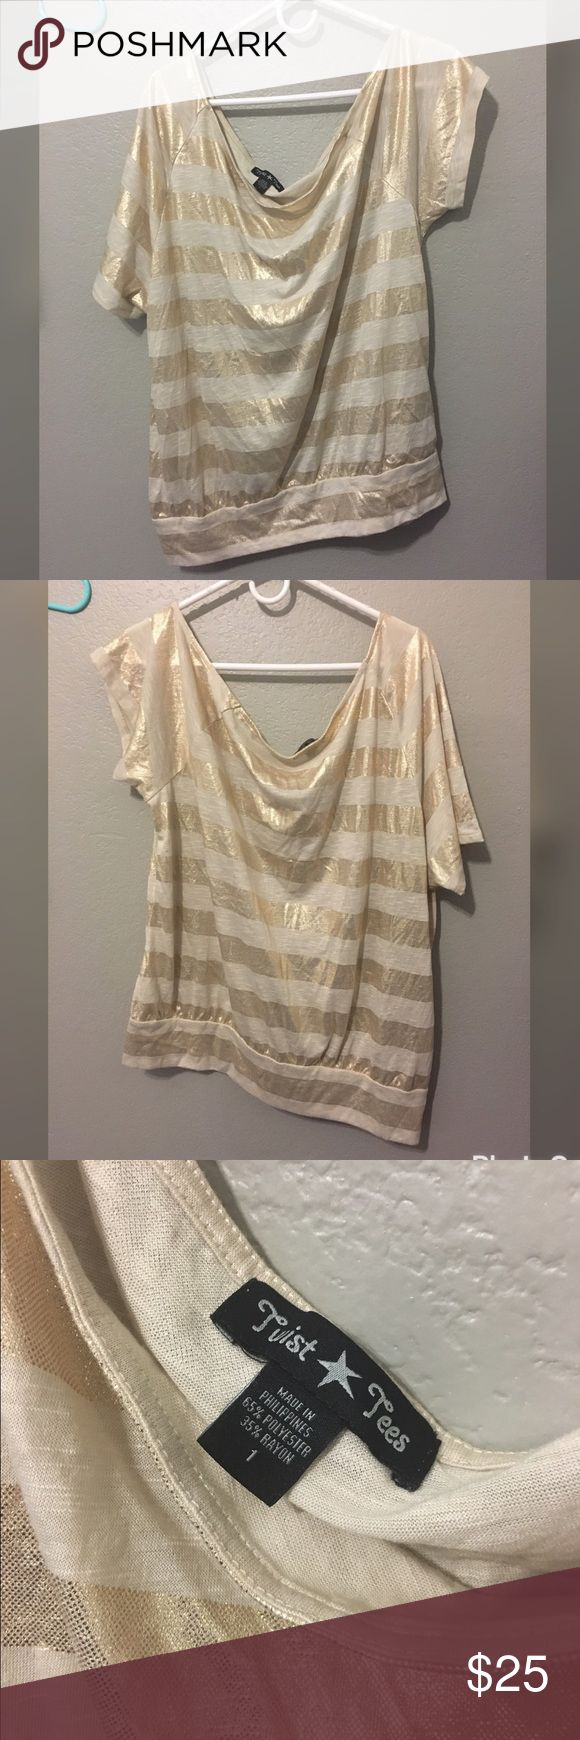 Off shoulder Torrid gold Tee size 1 Bu twist tees purchased from torrid size 1 fits true size and has gold striped detailing worn twice excellent condition torrid Tops